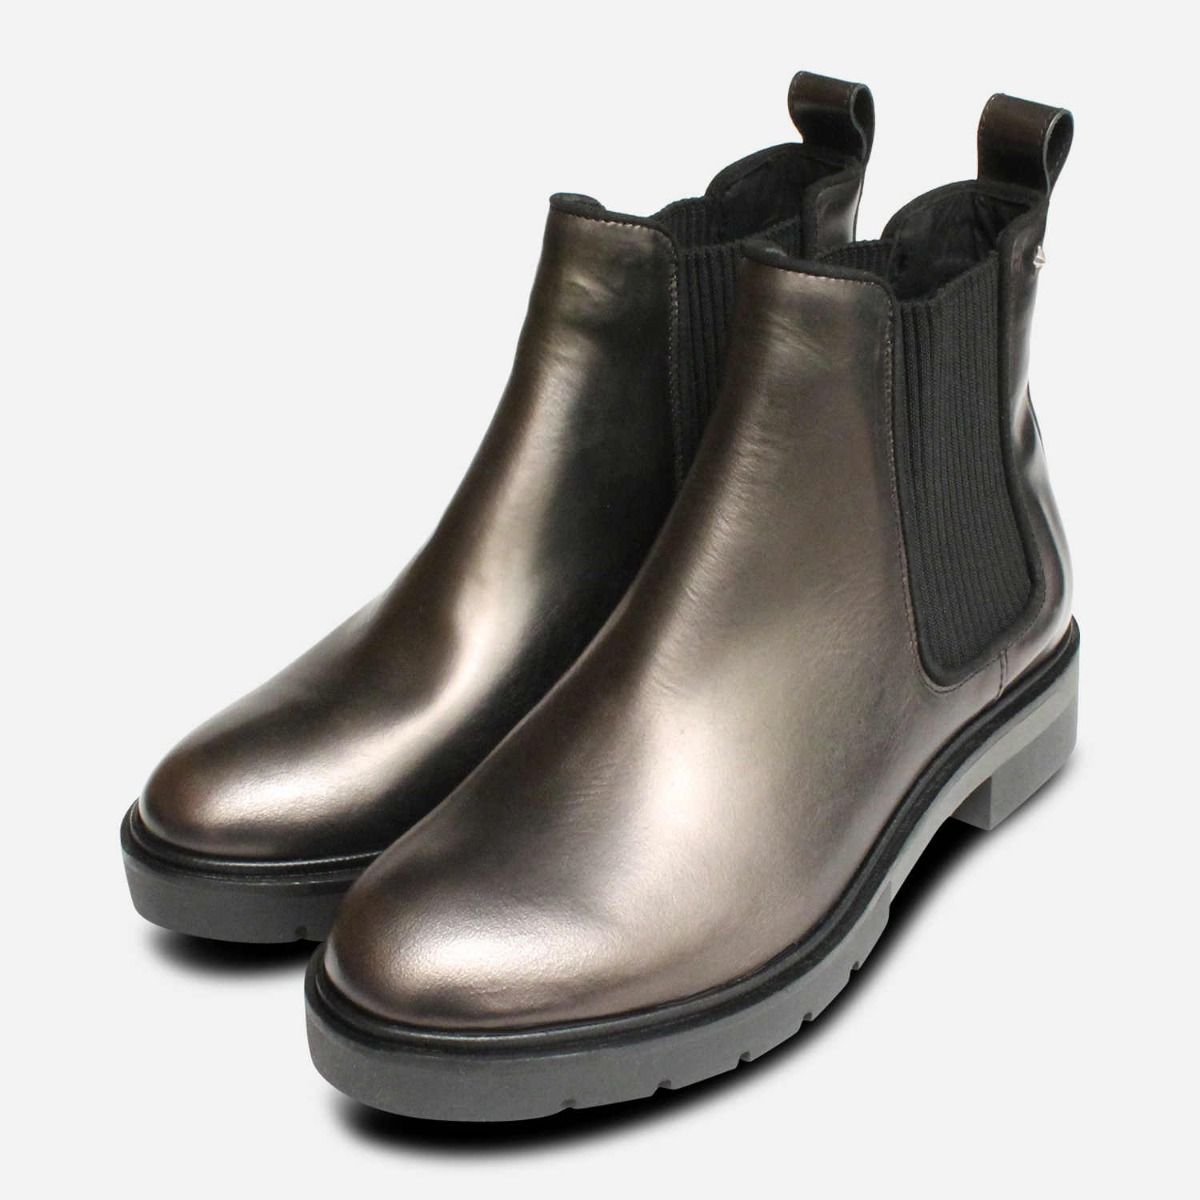 ac2ca72c Metallic Grey Tommy Hilfiger Womens Ankle Boots